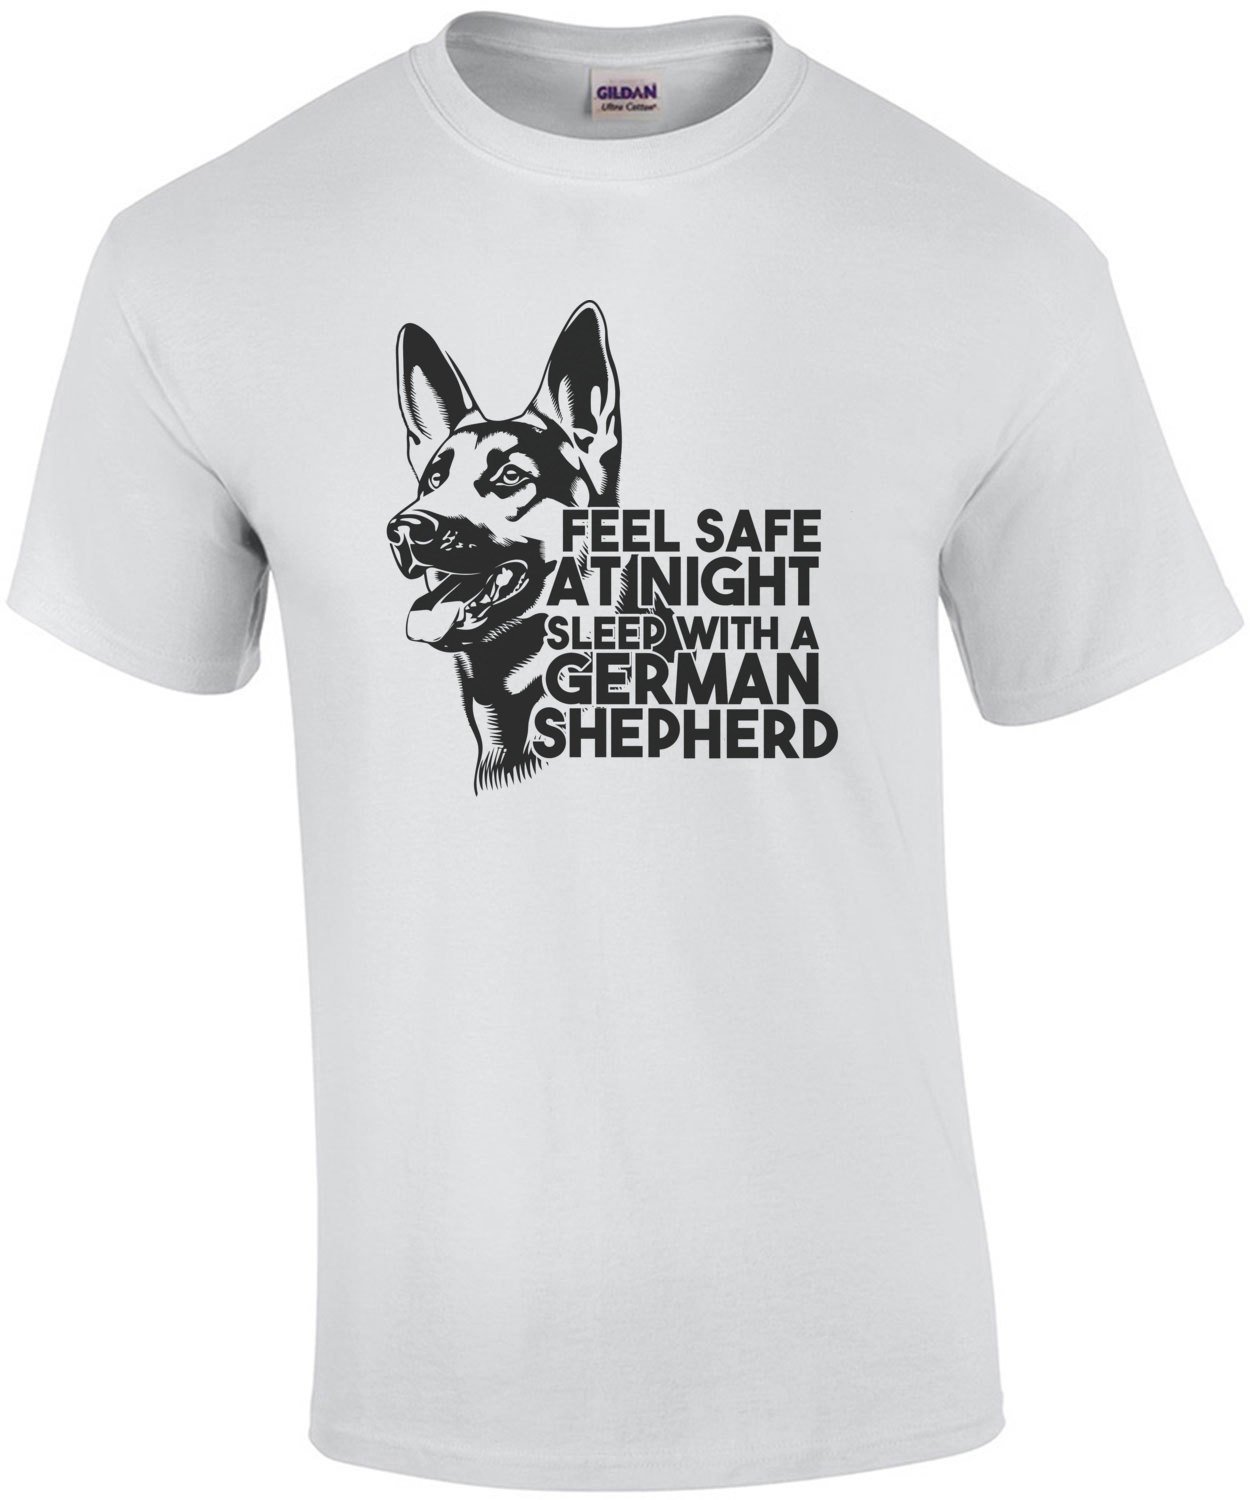 Feel safe at night sleep with a German Shepherd - German Shepherd T-Shirt